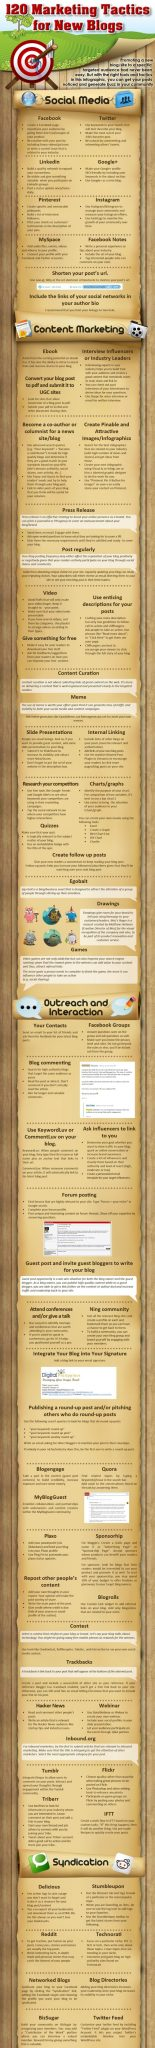 marketing-tactics-for-new-blogs-infographic1